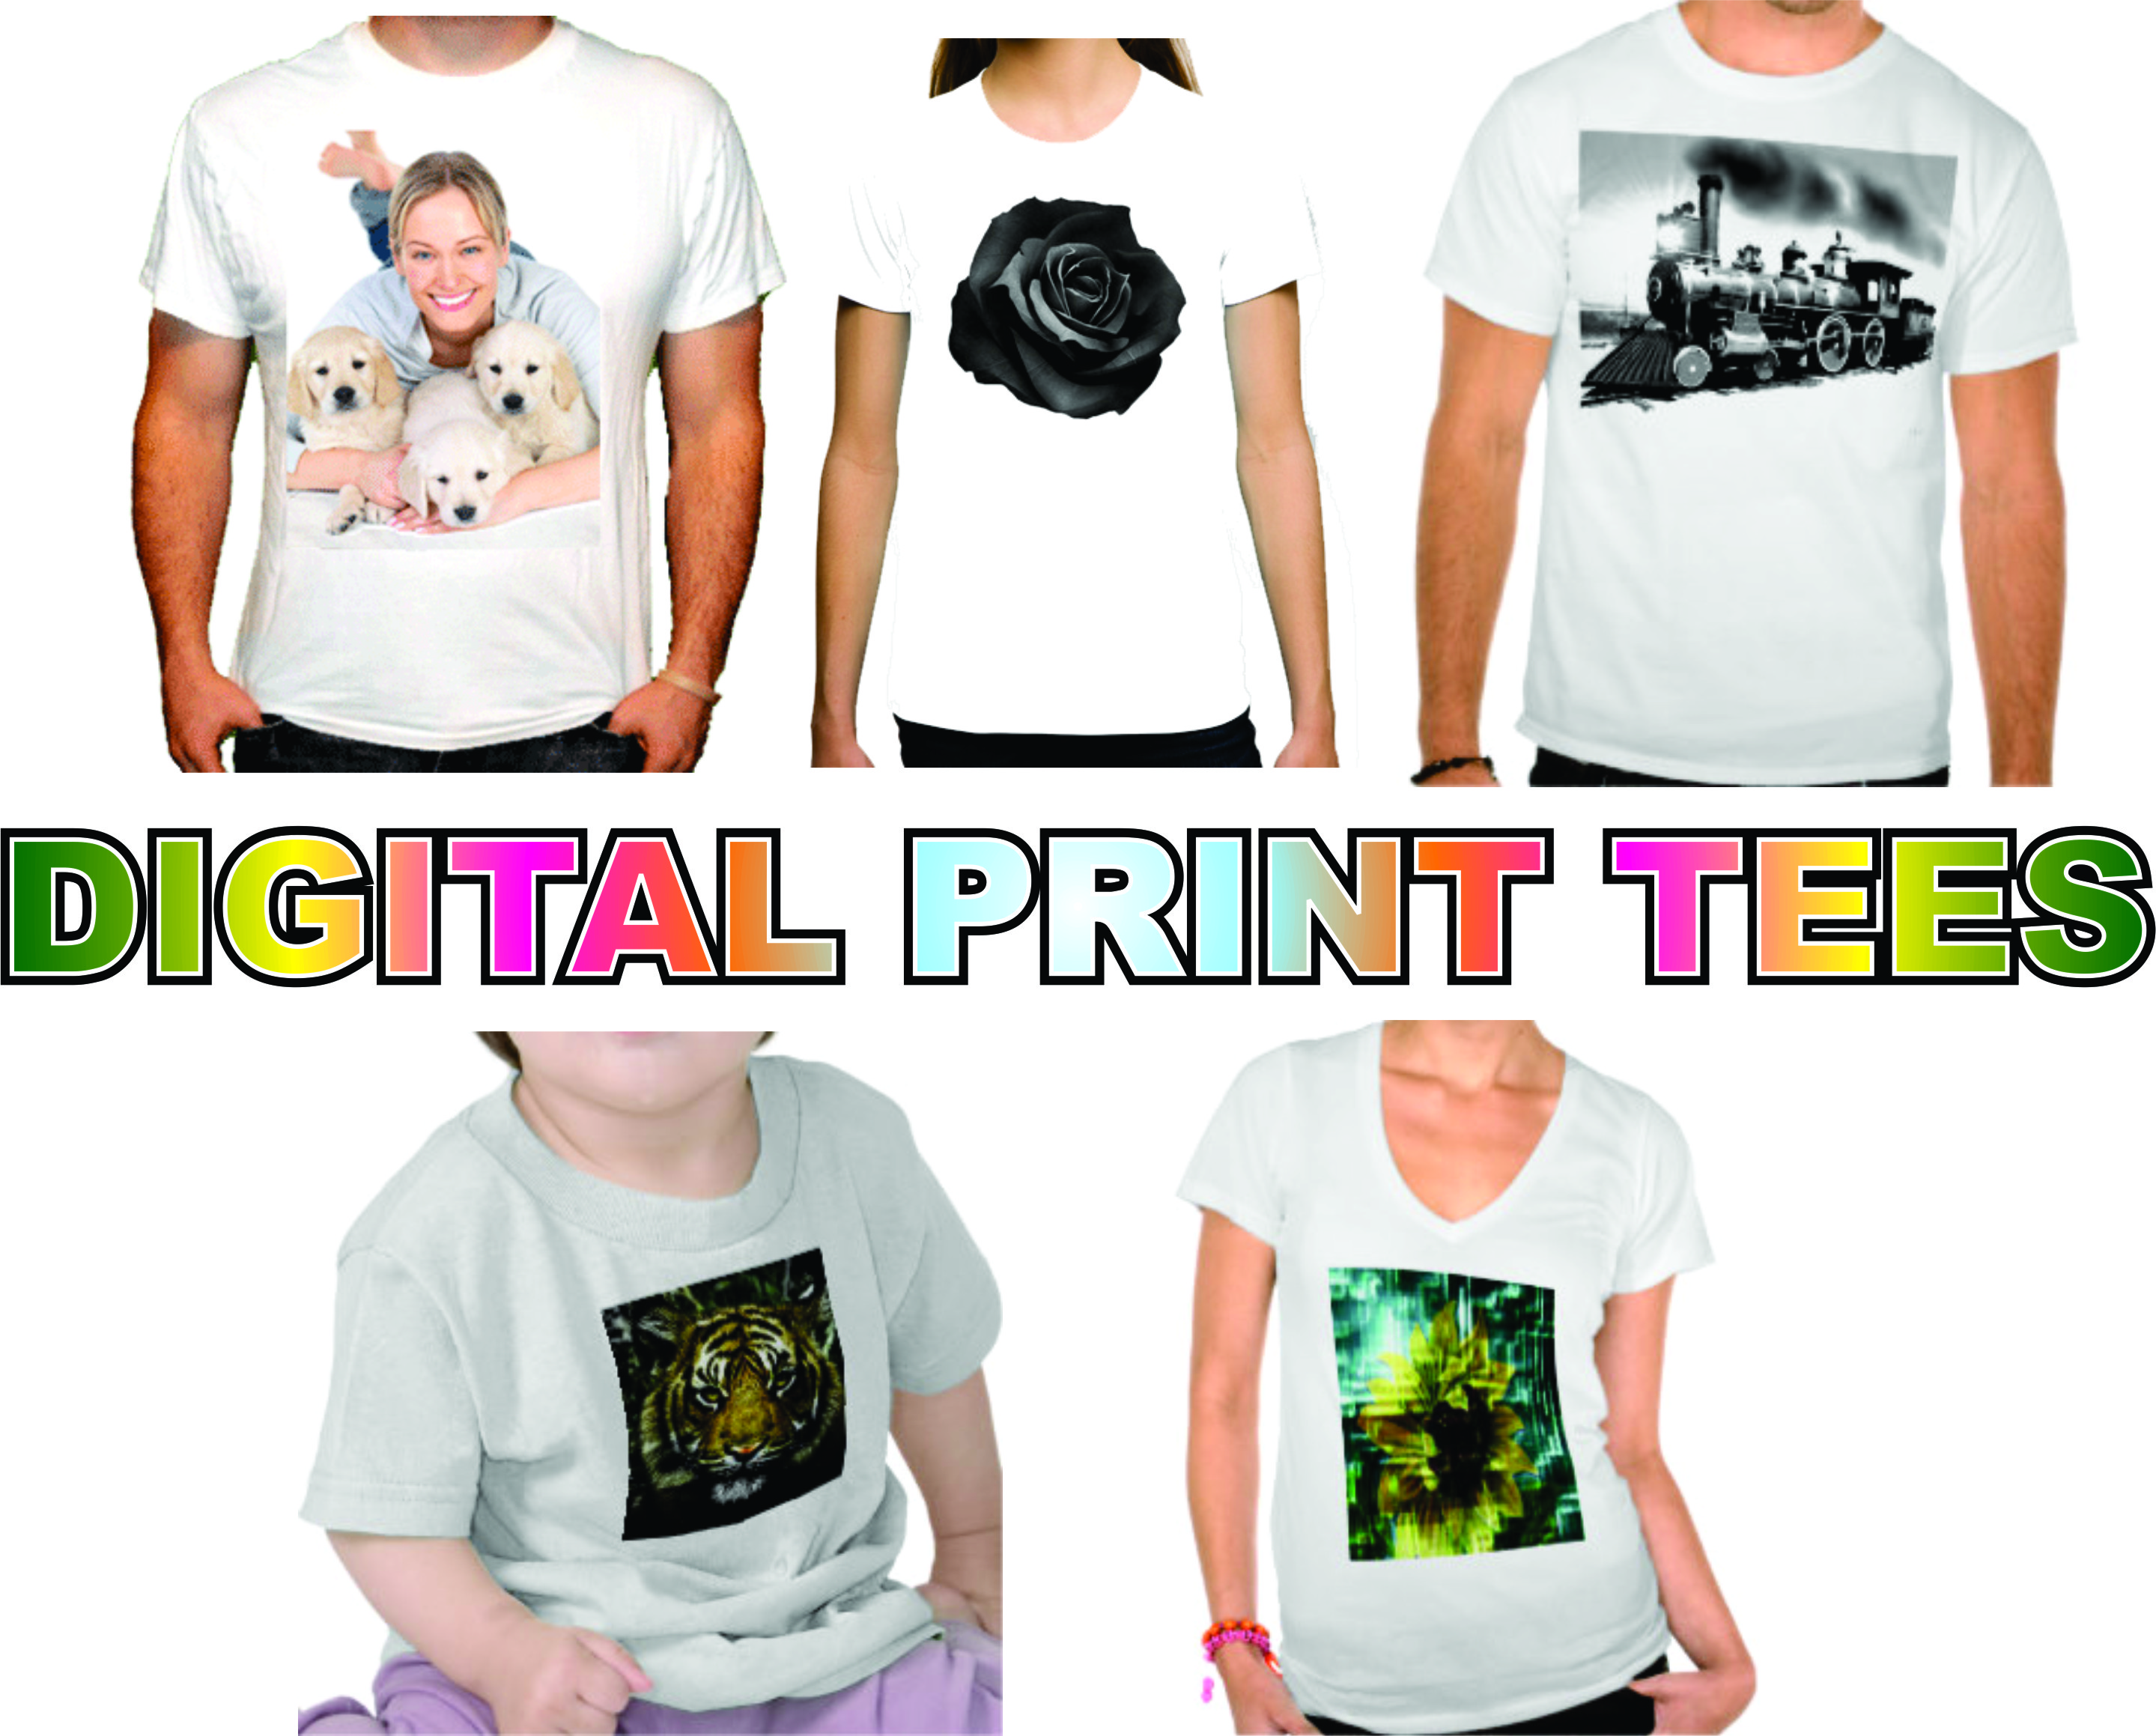 digital print tees